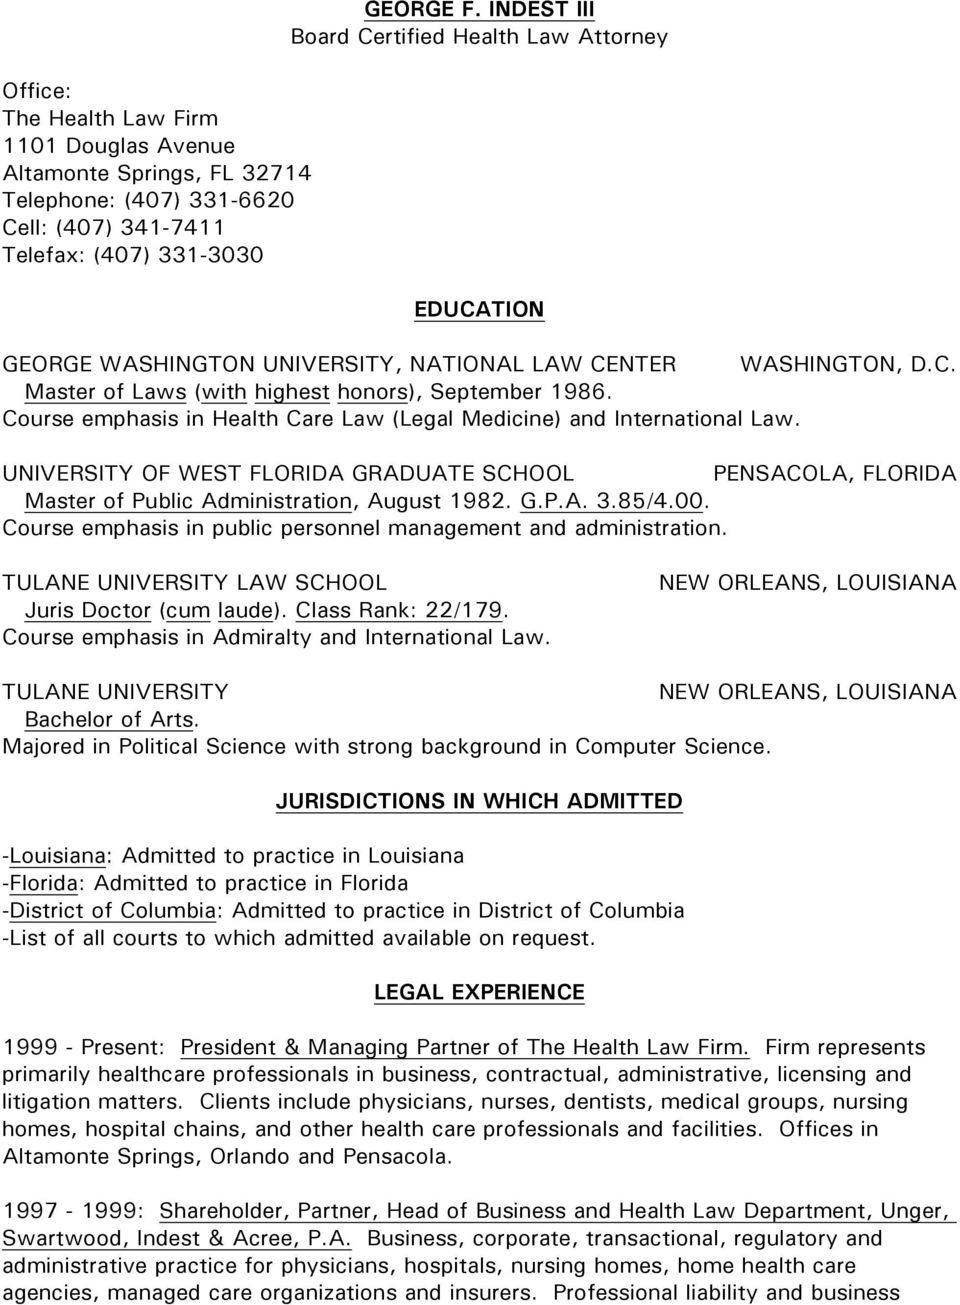 Course emphasis in Health Care Law (Legal Medicine) and International Law. UNIVERSITY OF WEST FLORIDA GRADUATE SCHOOL PENSACOLA, FLORIDA Master of Public Administration, August 1982. G.P.A. 3.85/4.00.